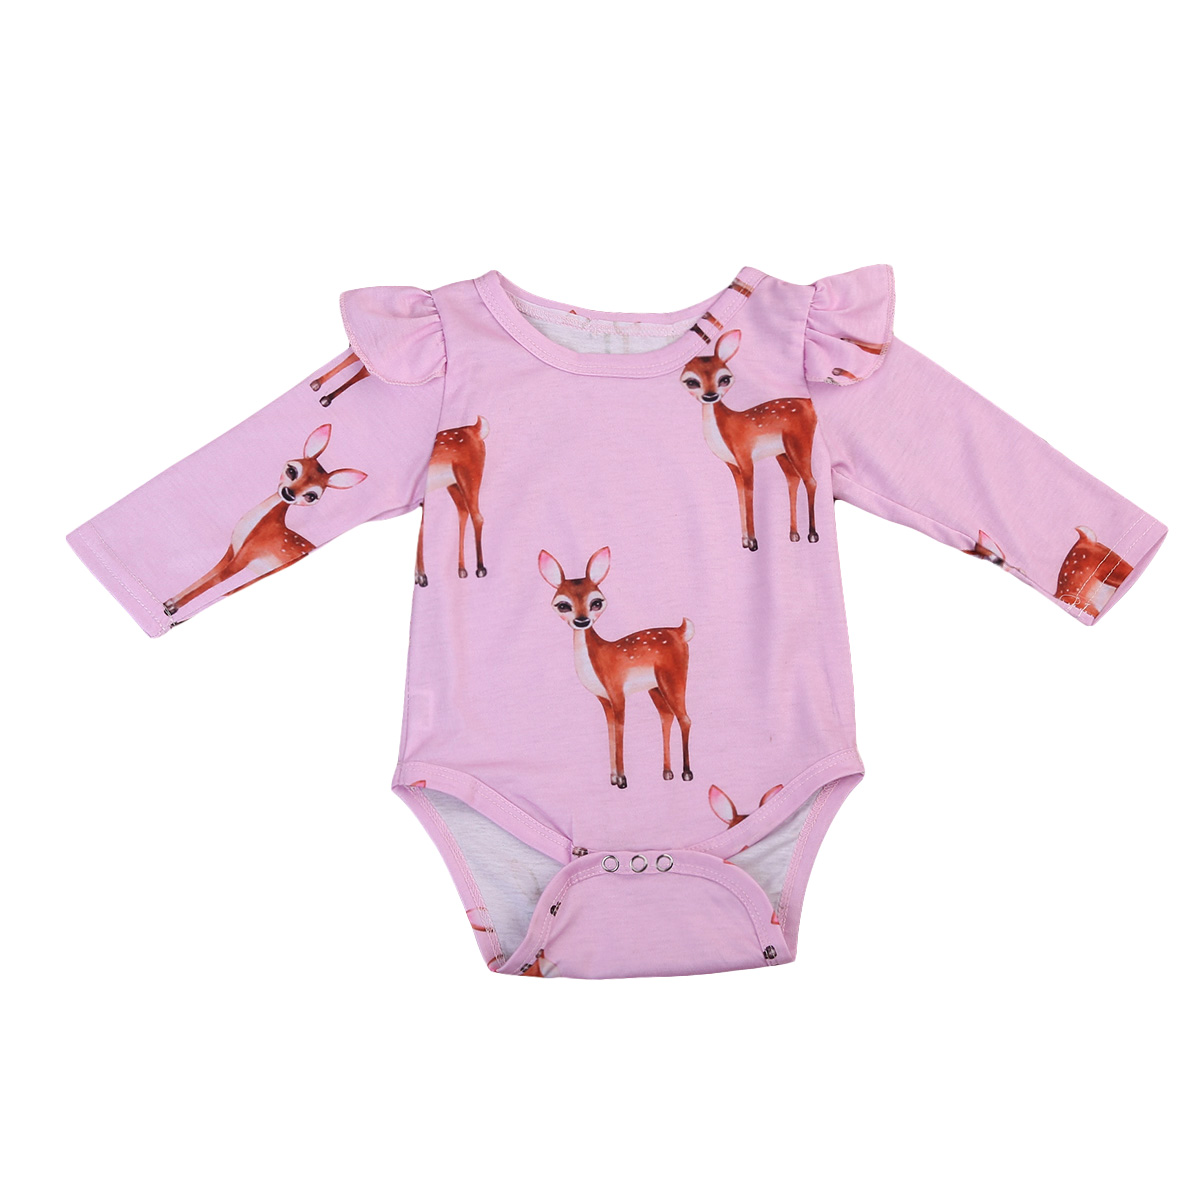 Cotton Newborn Infant Kids Baby Girls Long Sleeve Floral Romper Jumpsuit Clothes Outfits